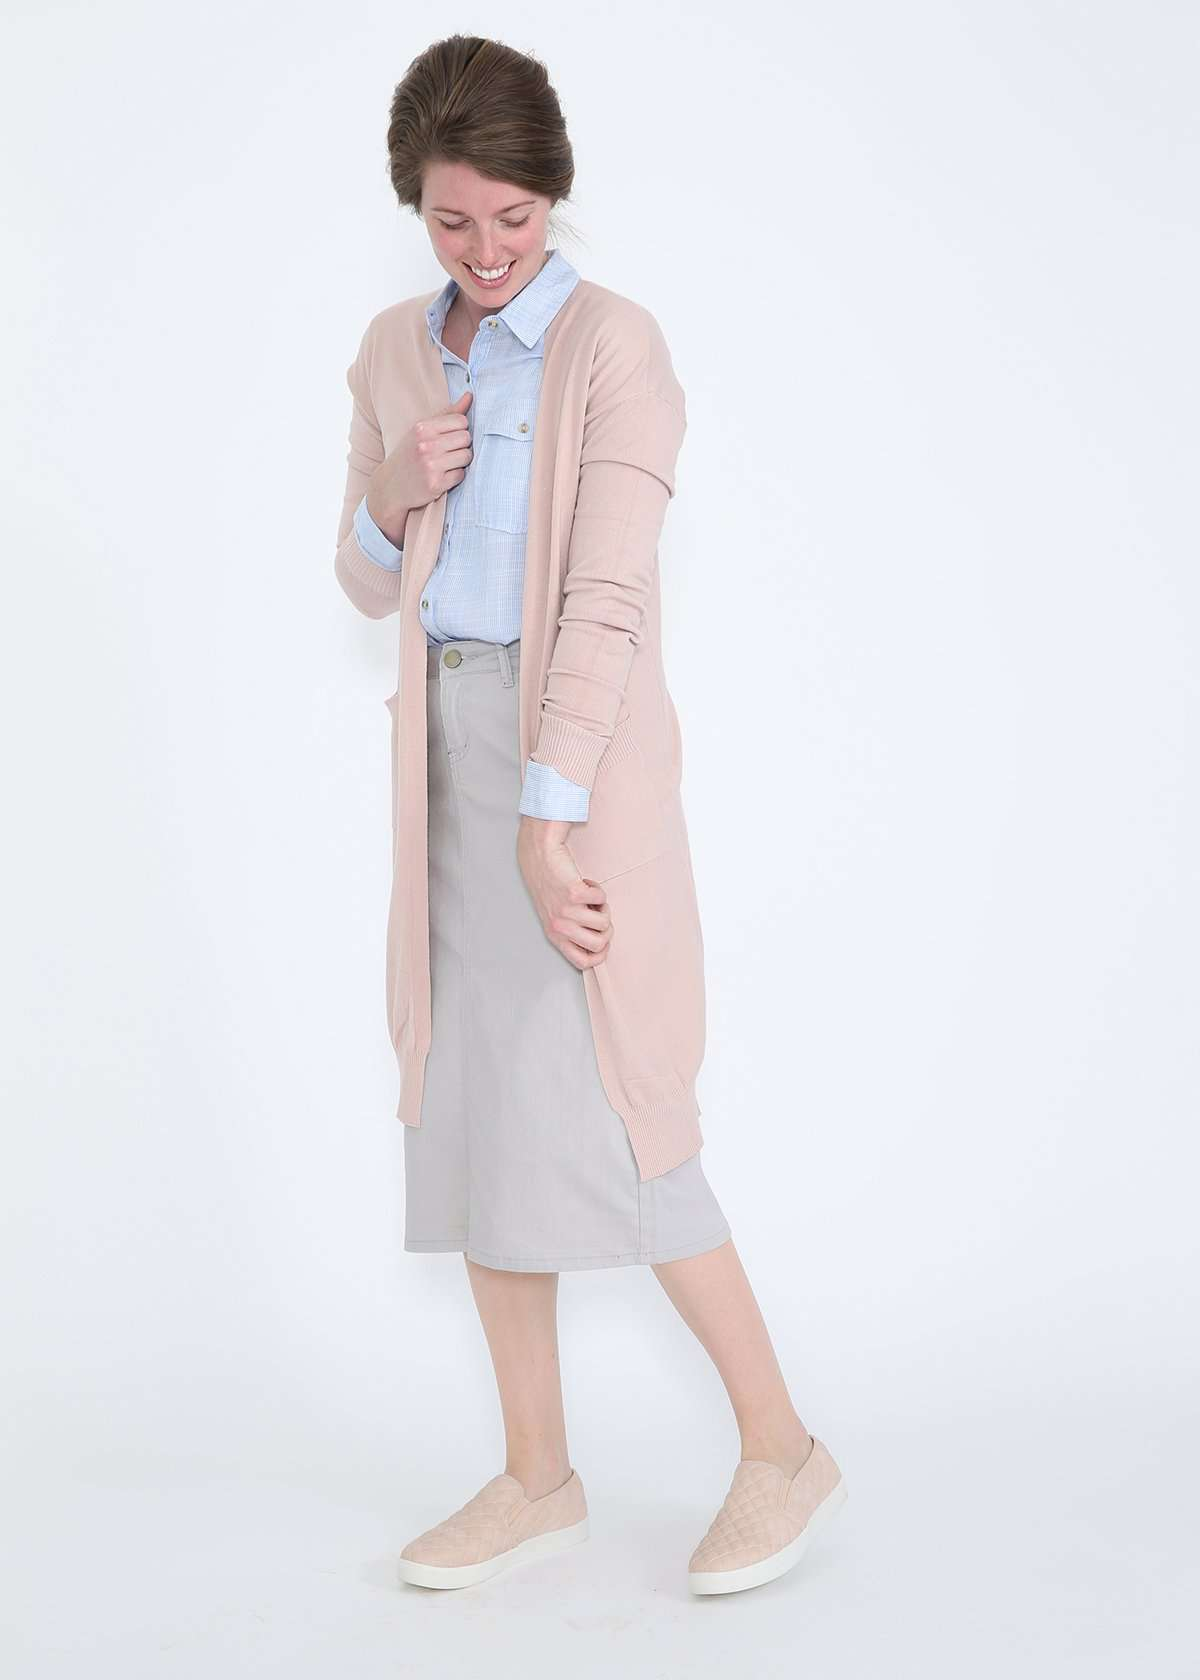 Buttery soft cozy cardigan in blush or gray